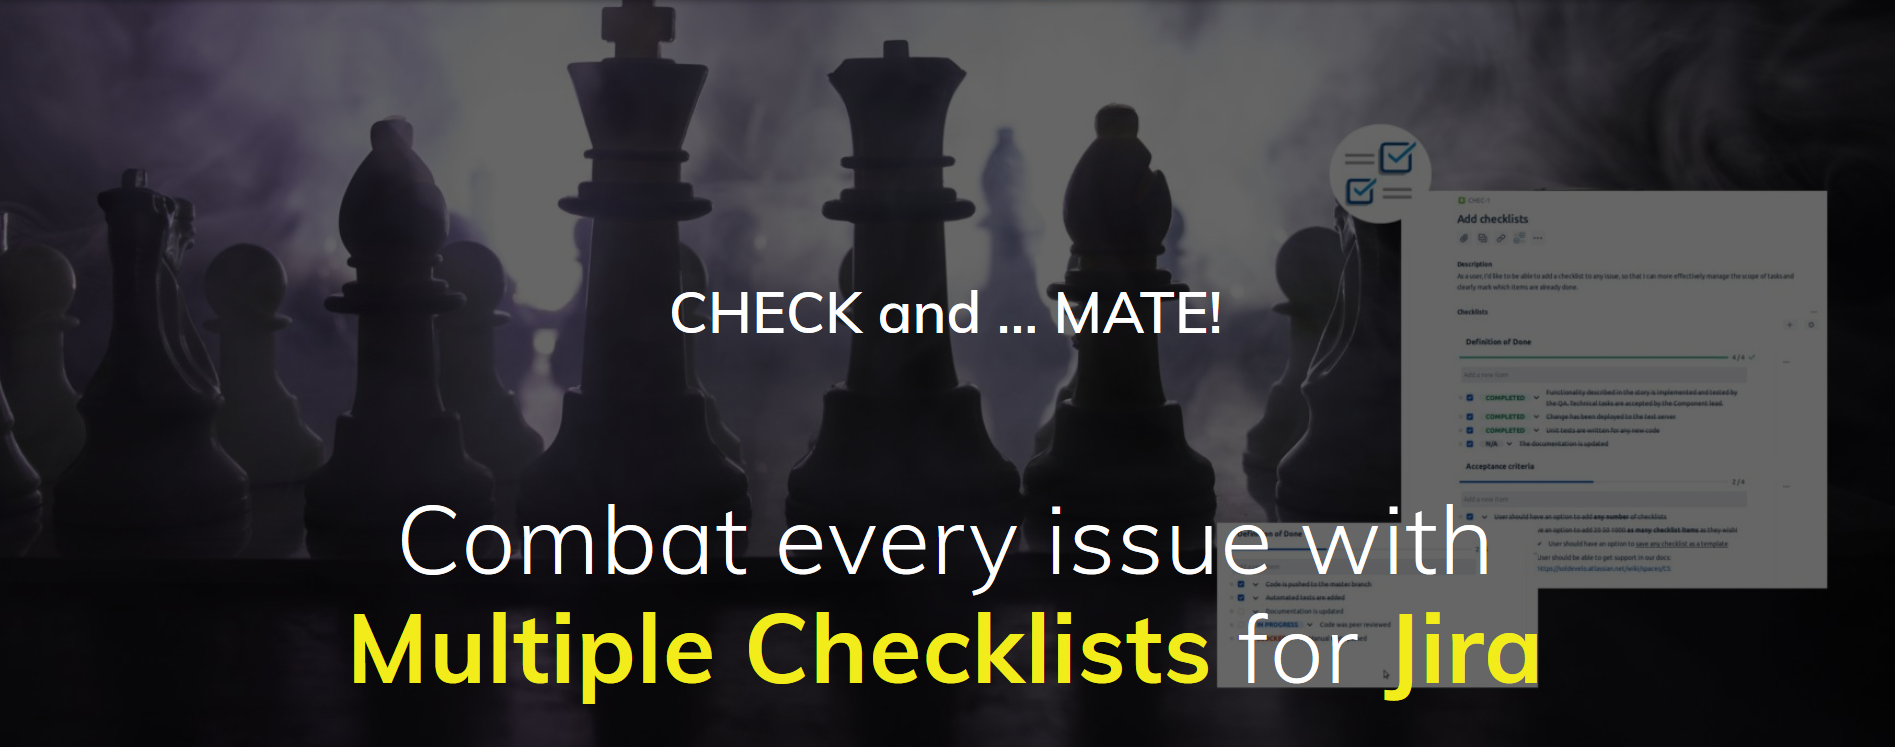 Multiple Checklists for Jira- baner new